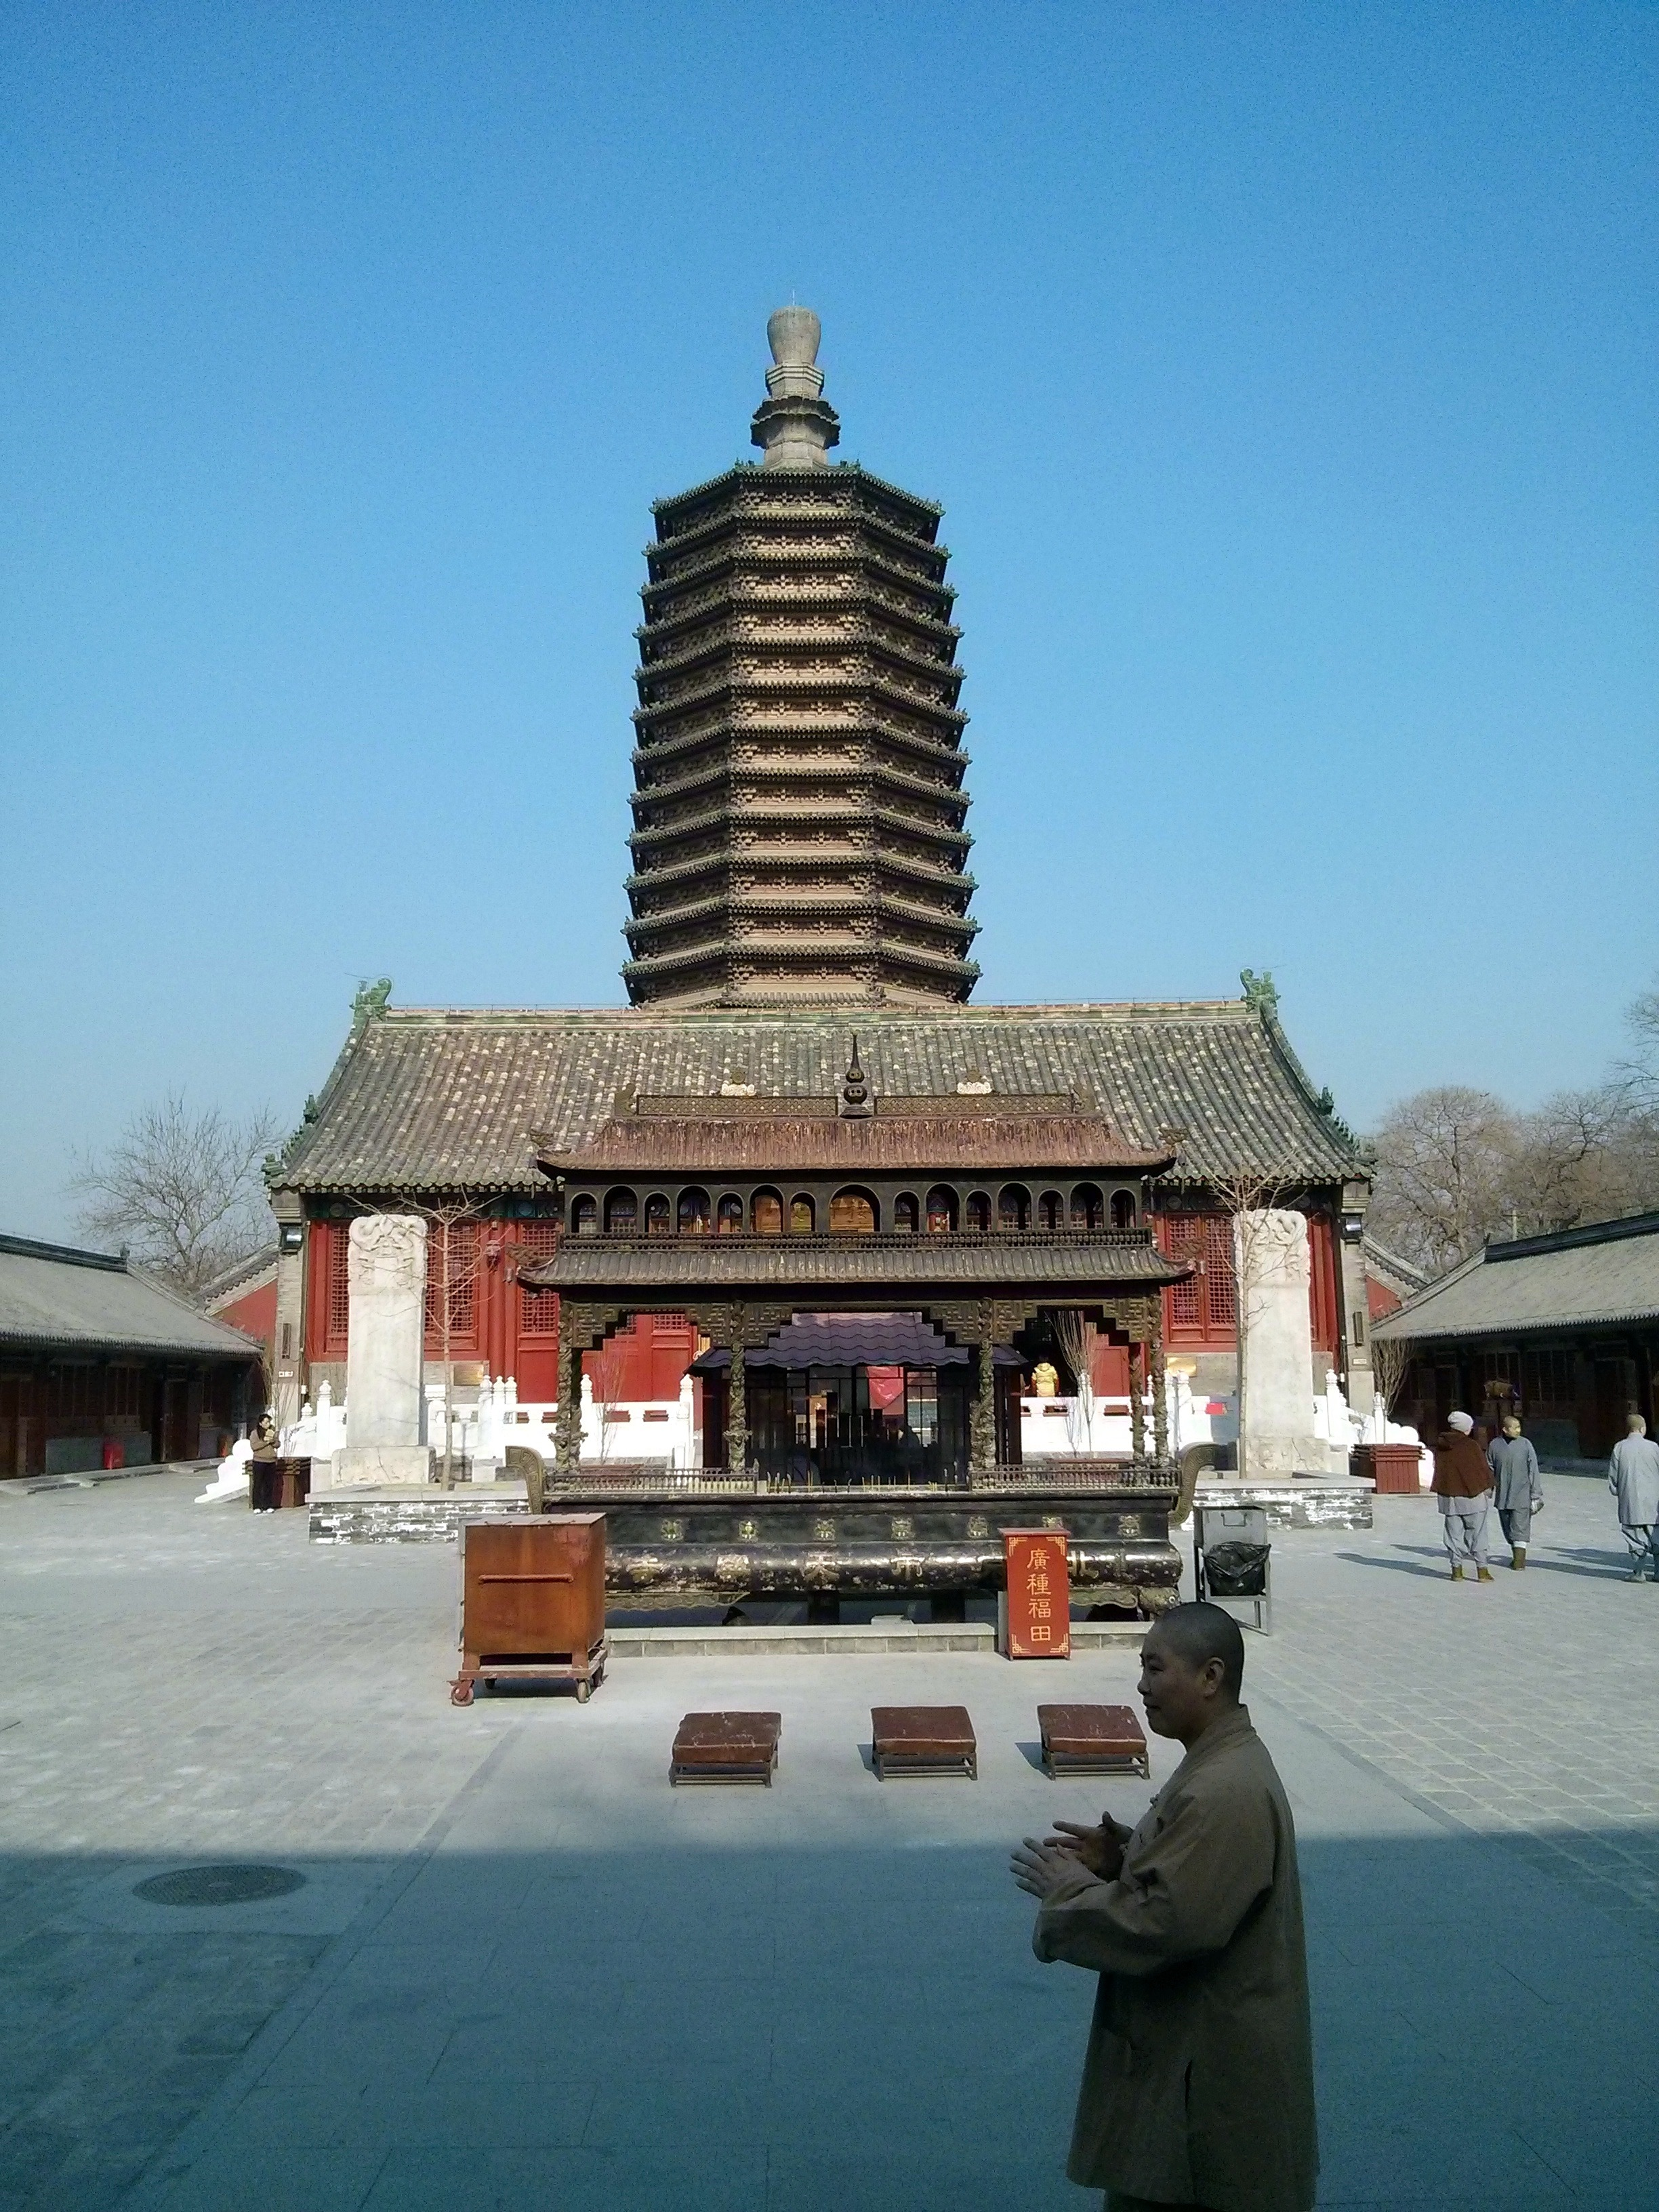 Cathedral of Our Saviour Běijīng, Tianning Temple Pagoda : Beijing | Visions of Travel